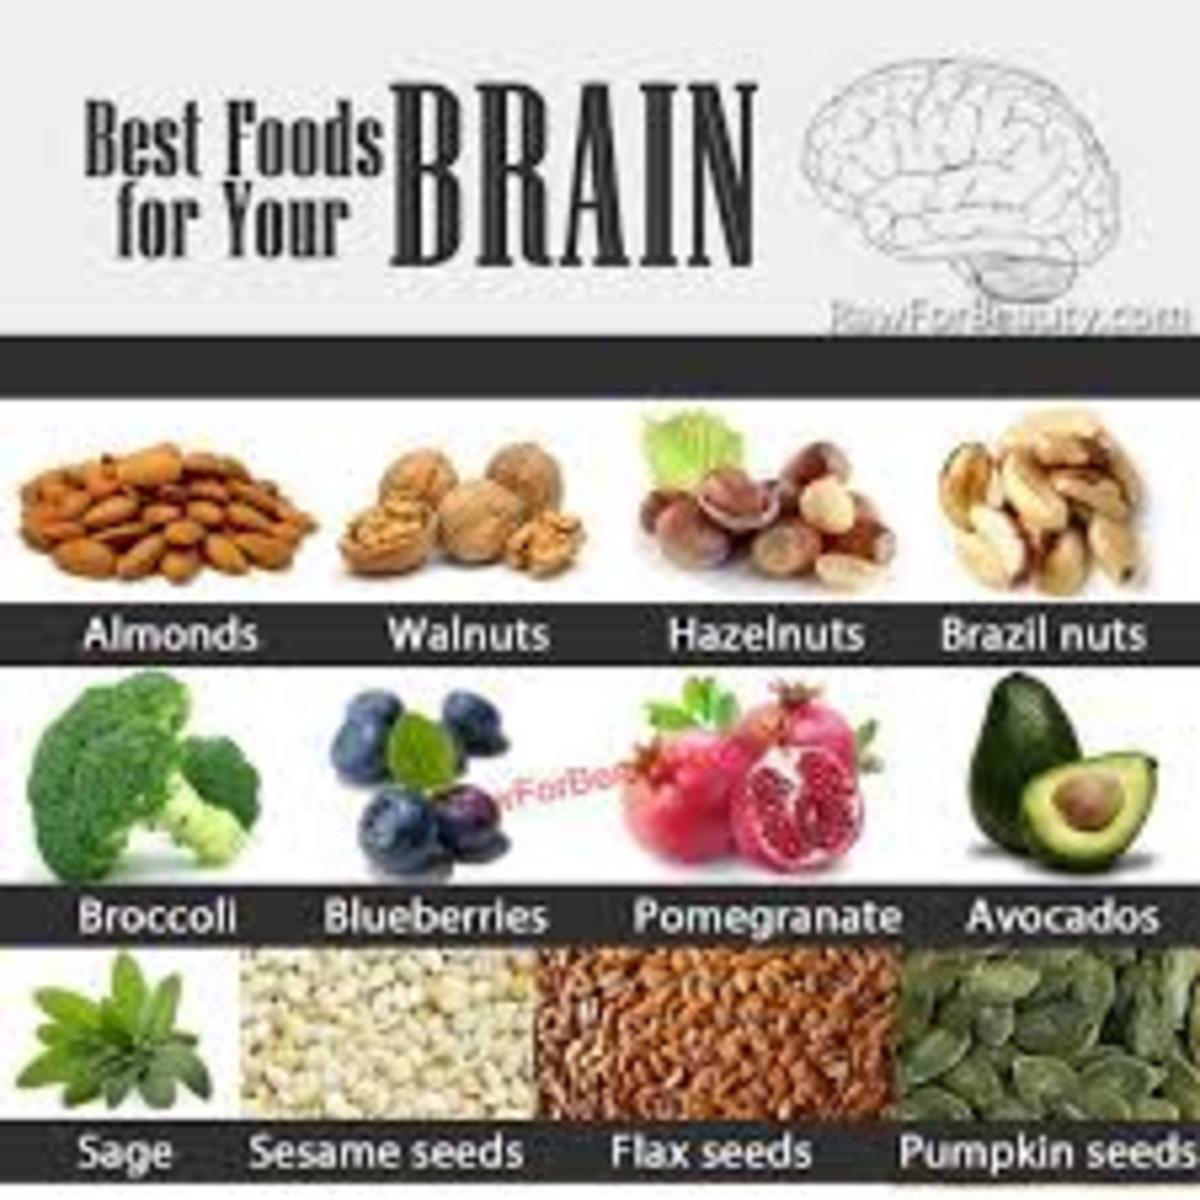 The brain needs the right nutrients for optimum mental performance and memory from quality fats like Omega-3, antioxidants, good carbohydrates, fiber and water.